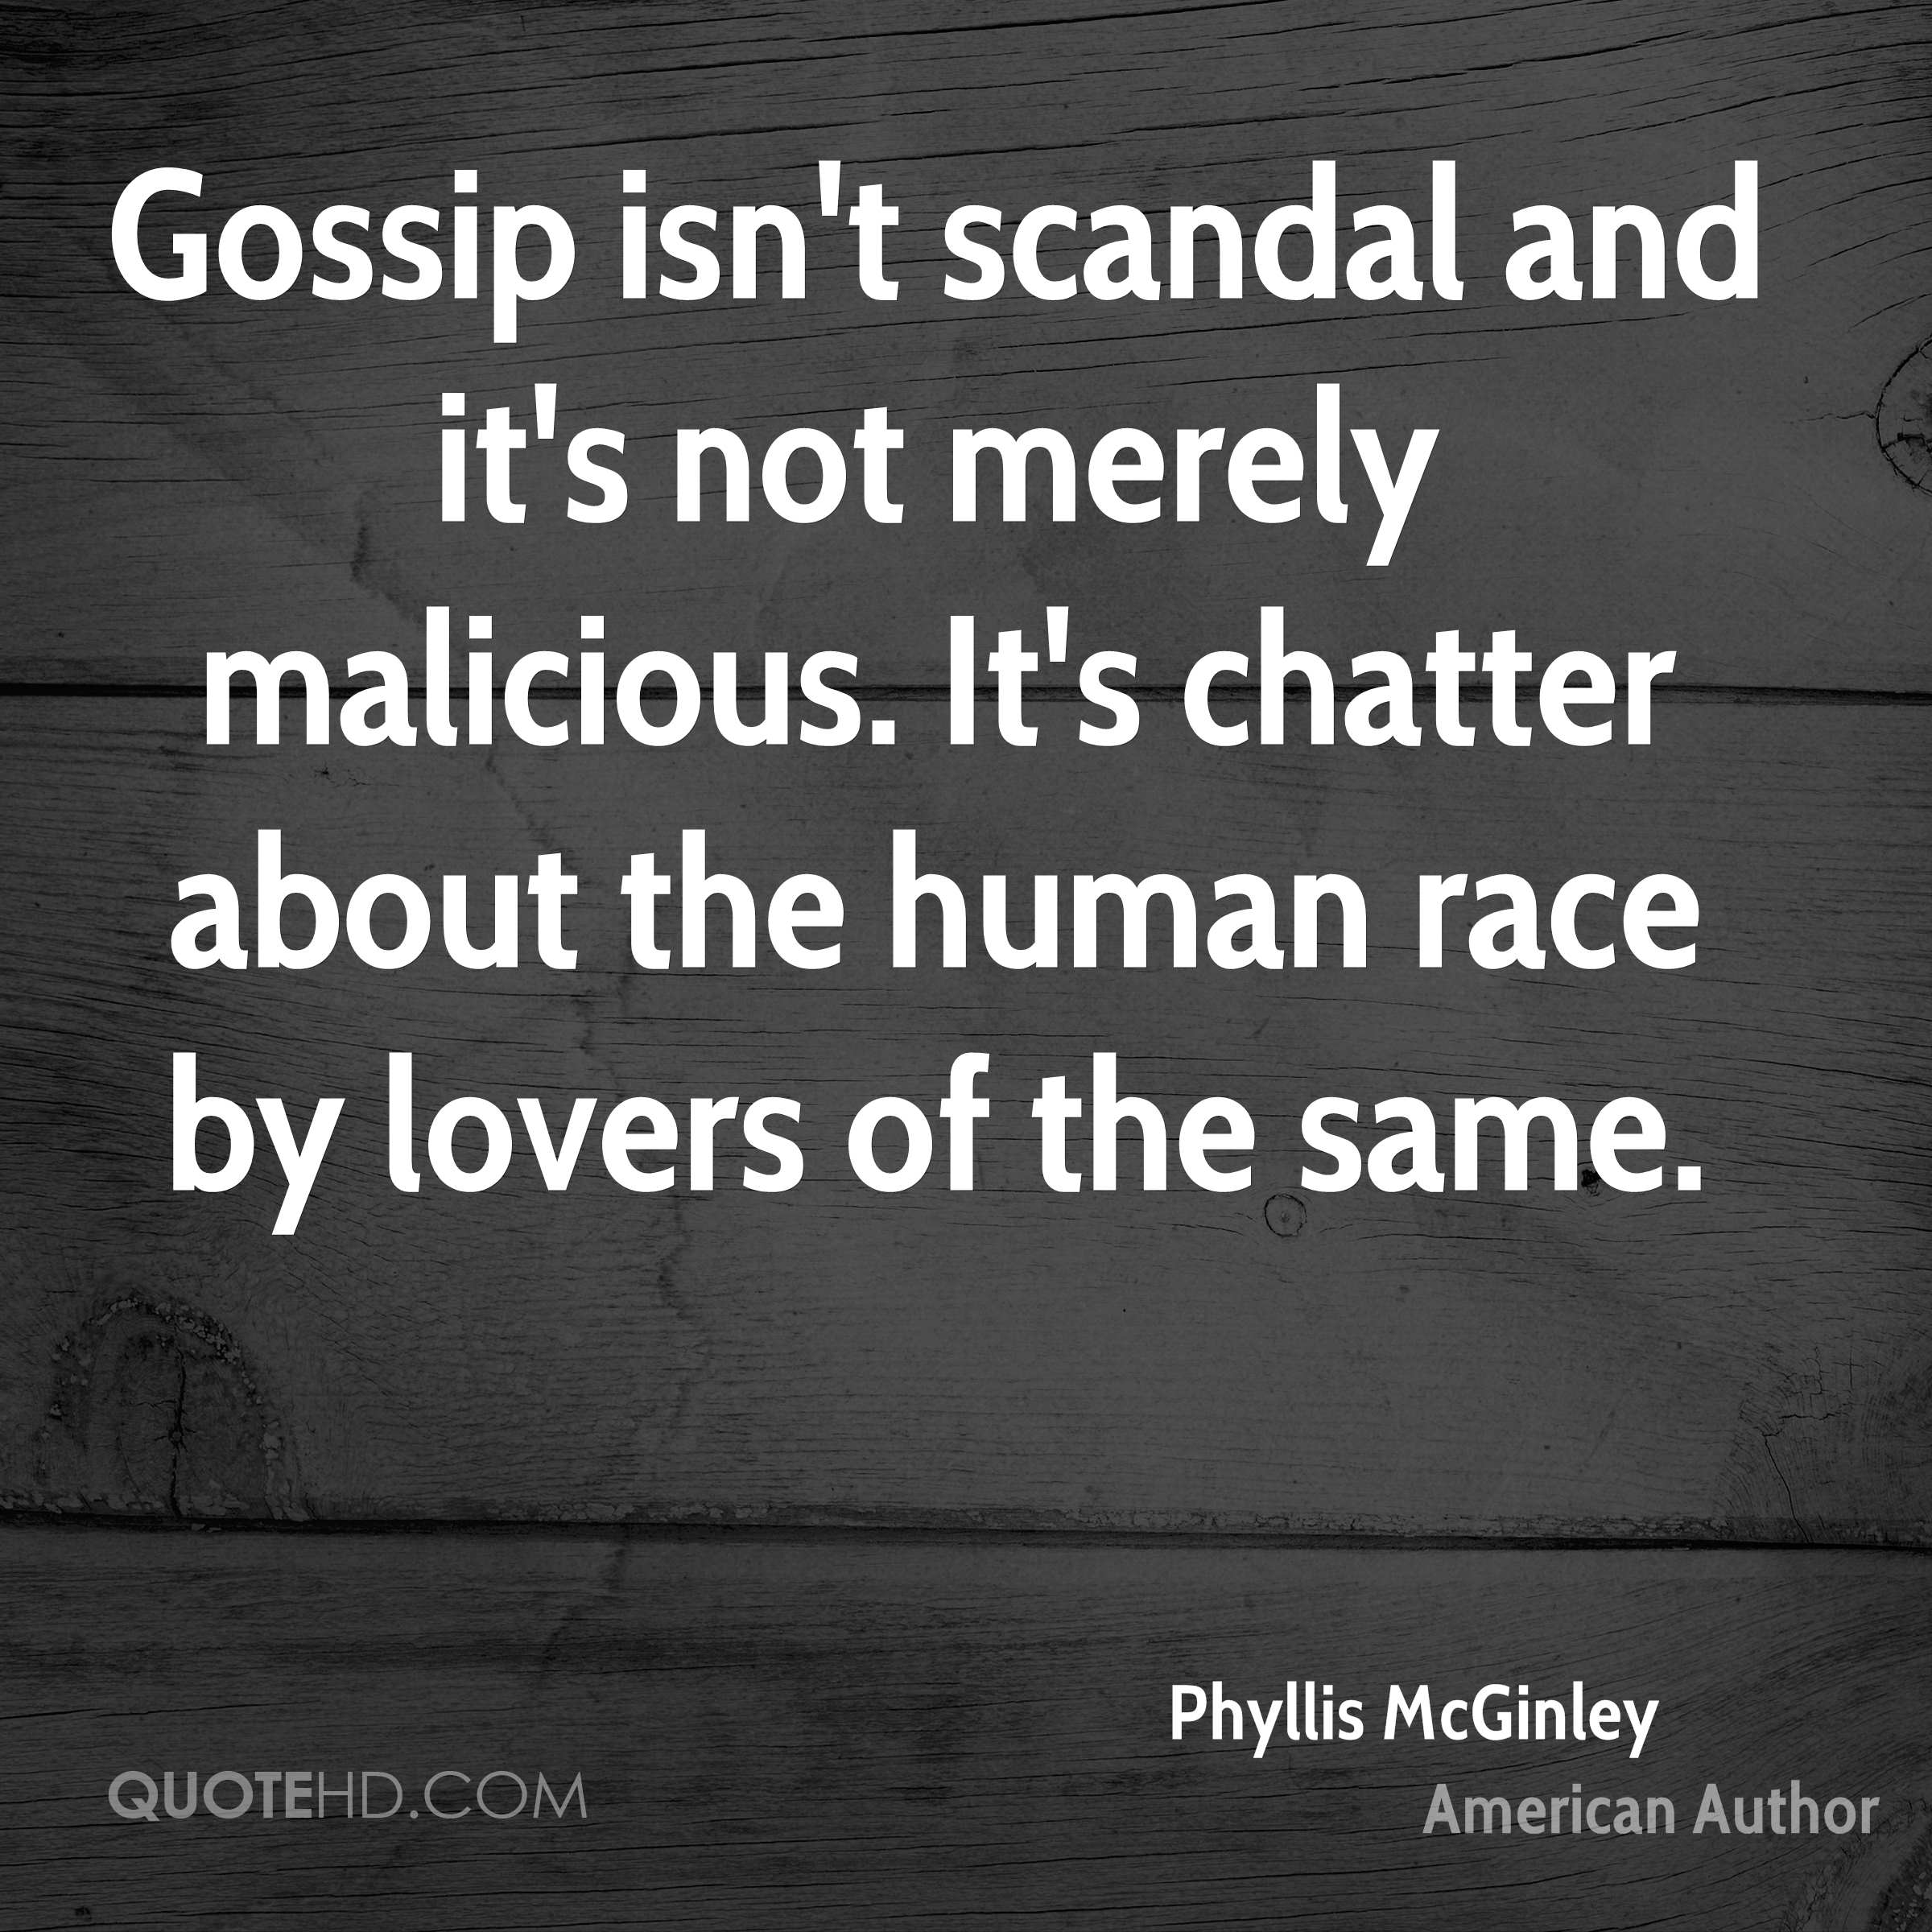 Gossip isn't scandal and it's not merely malicious. It's chatter about the human race by lovers of the same.